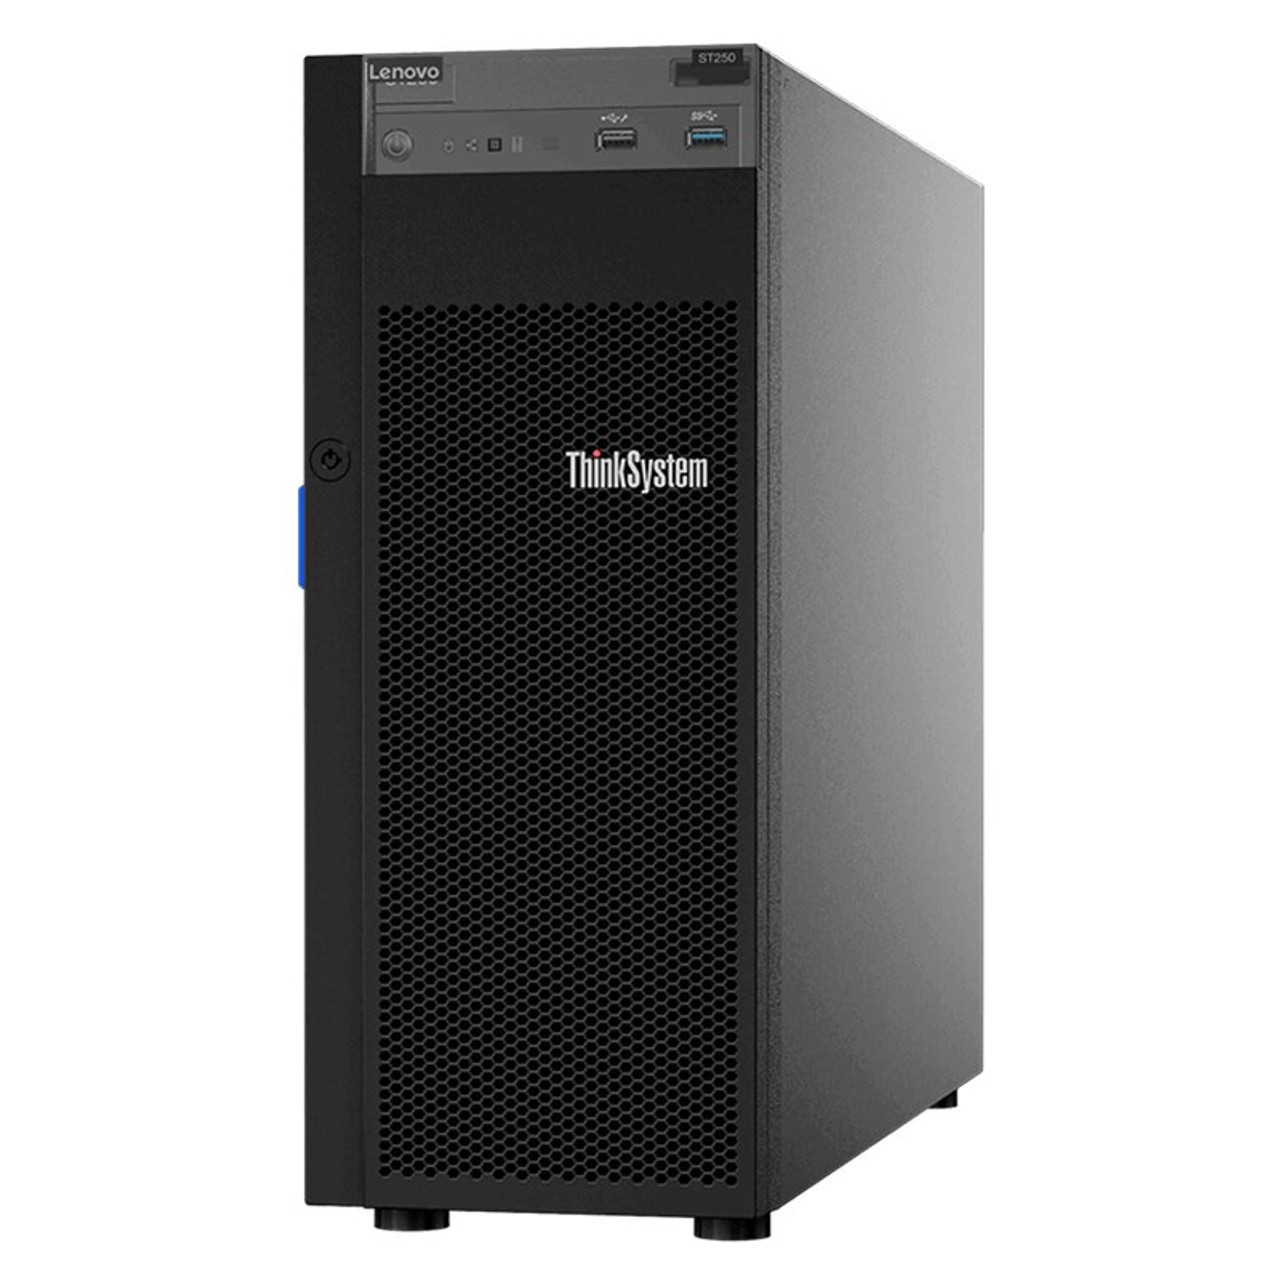 Product image for Lenovo ThinkSystem ST250 Tower Server Xeon E-2104G 16GB 1.2TB SAS (2/8) NO OS   CX Computer Superstore